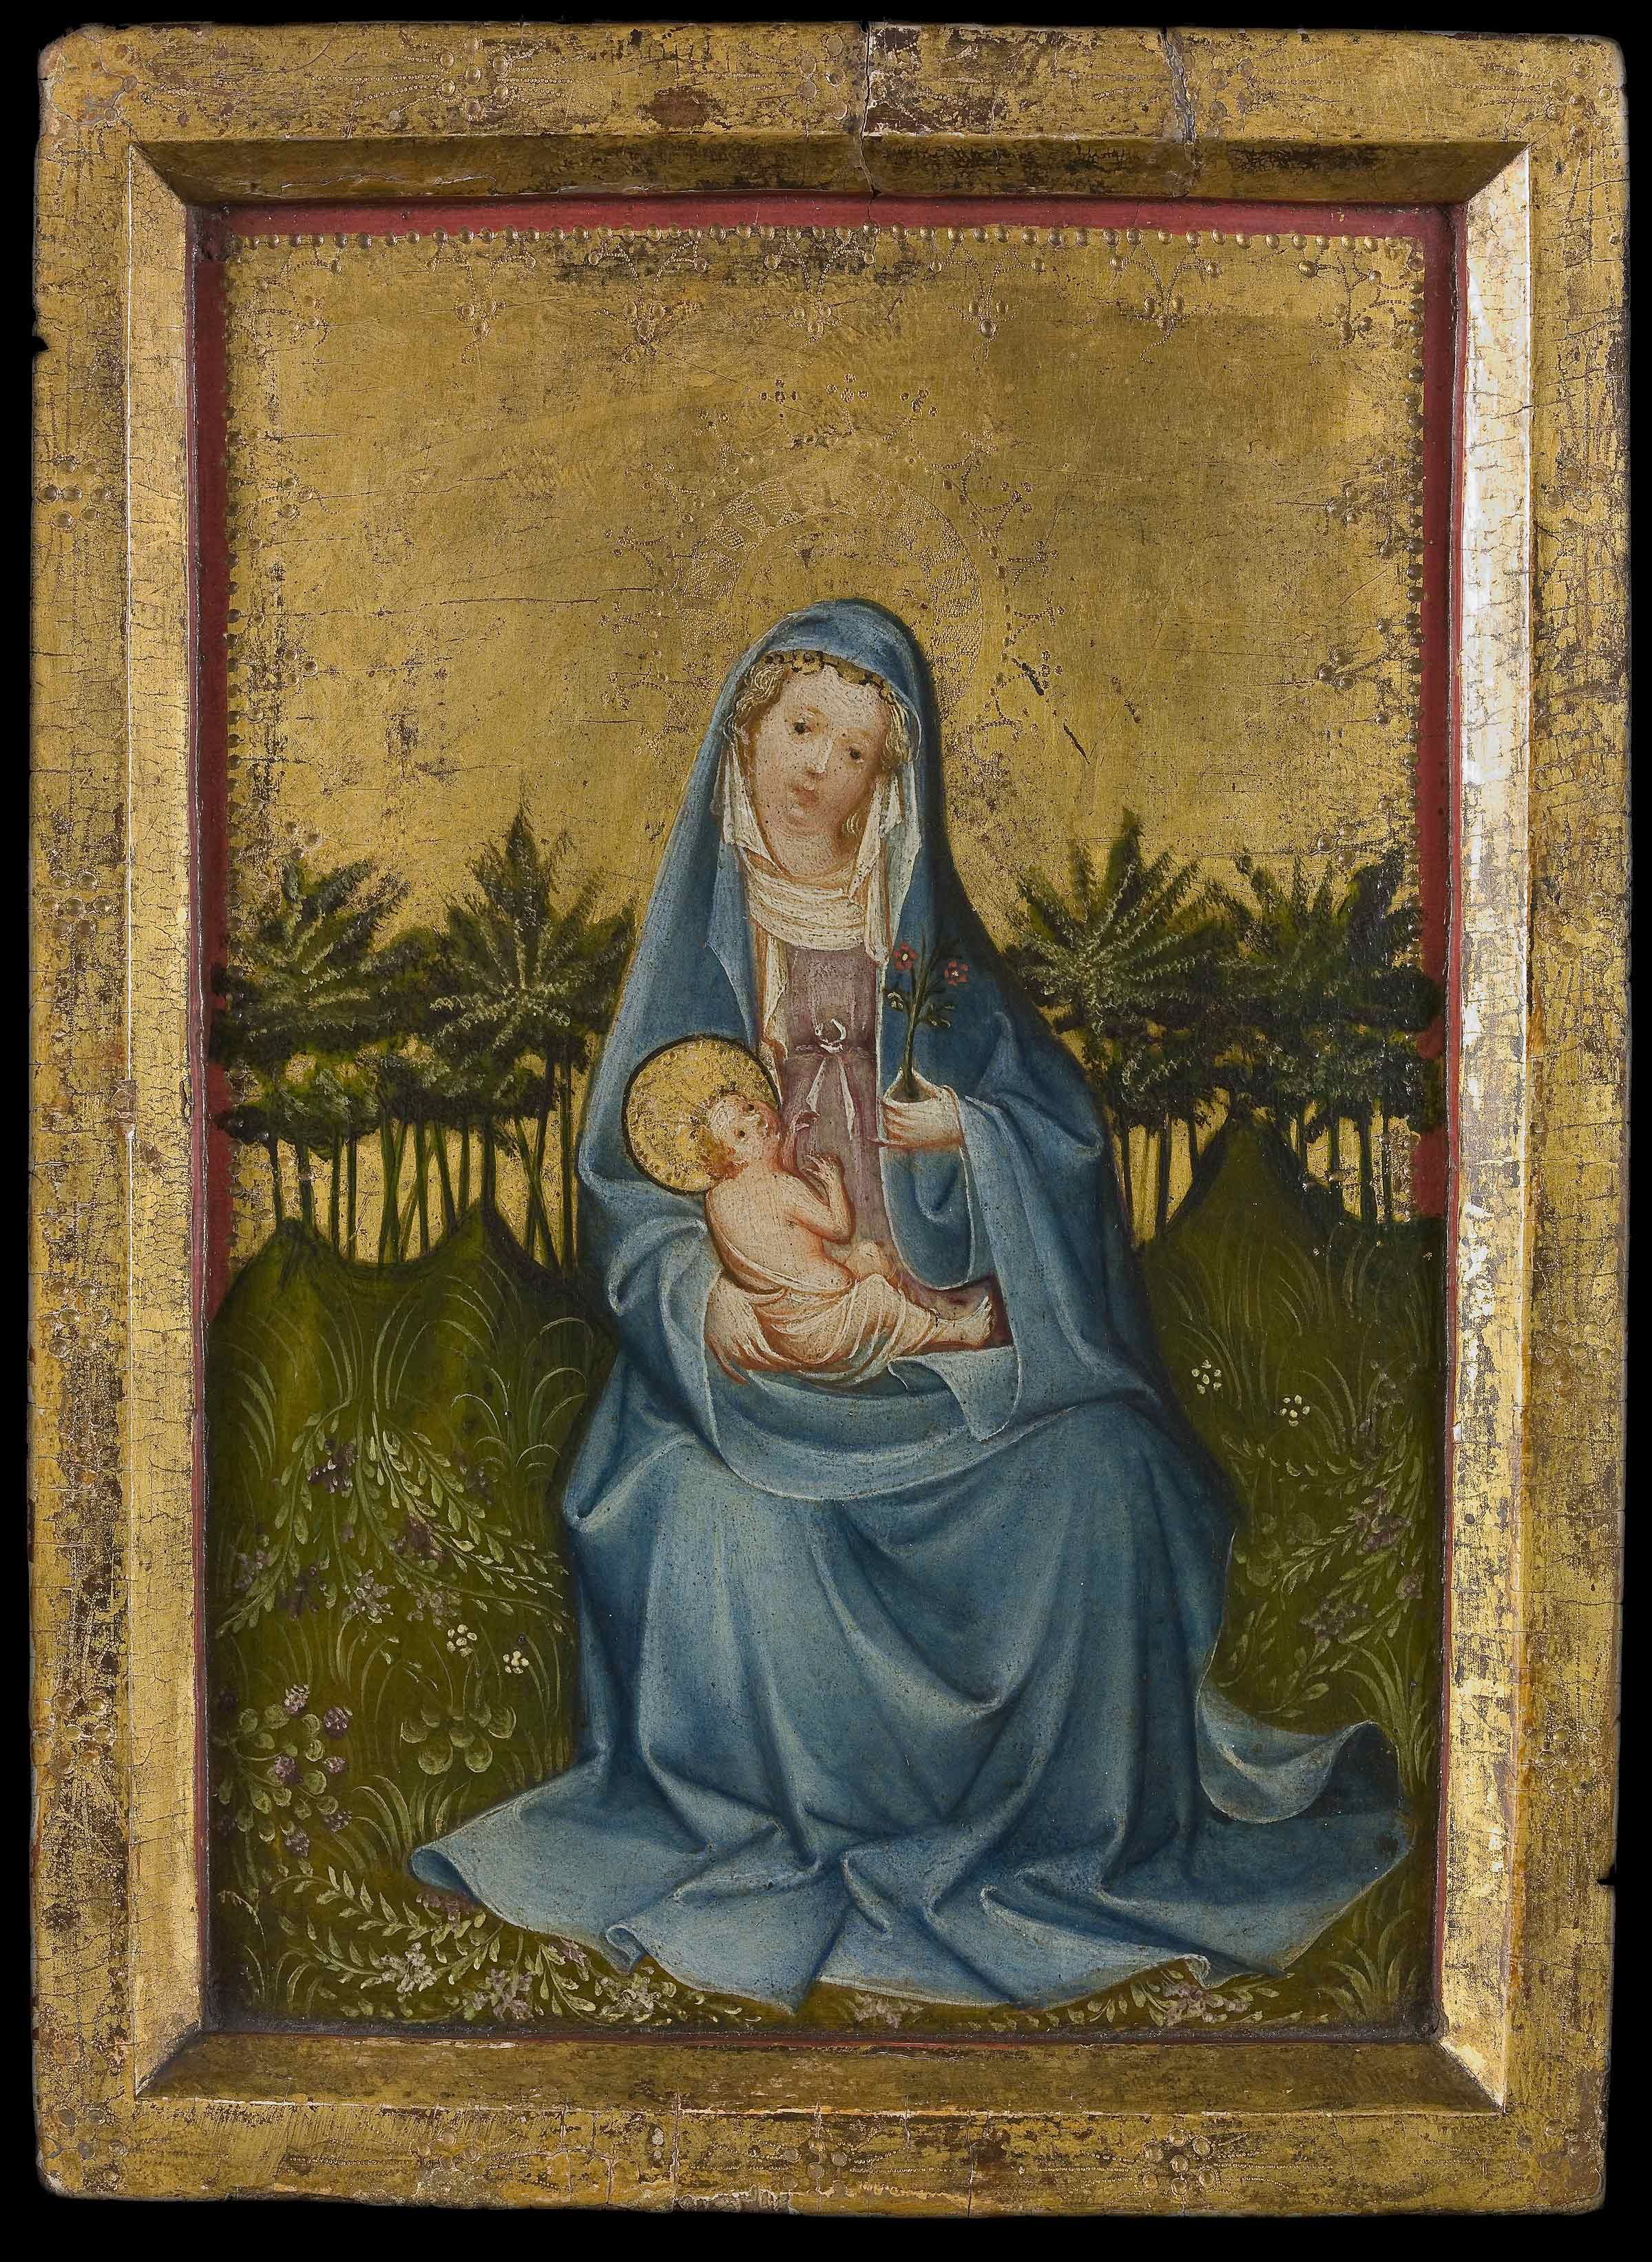 Cologne, c. 1420 – 25: Maria with Child in the Garden of Paradise ...